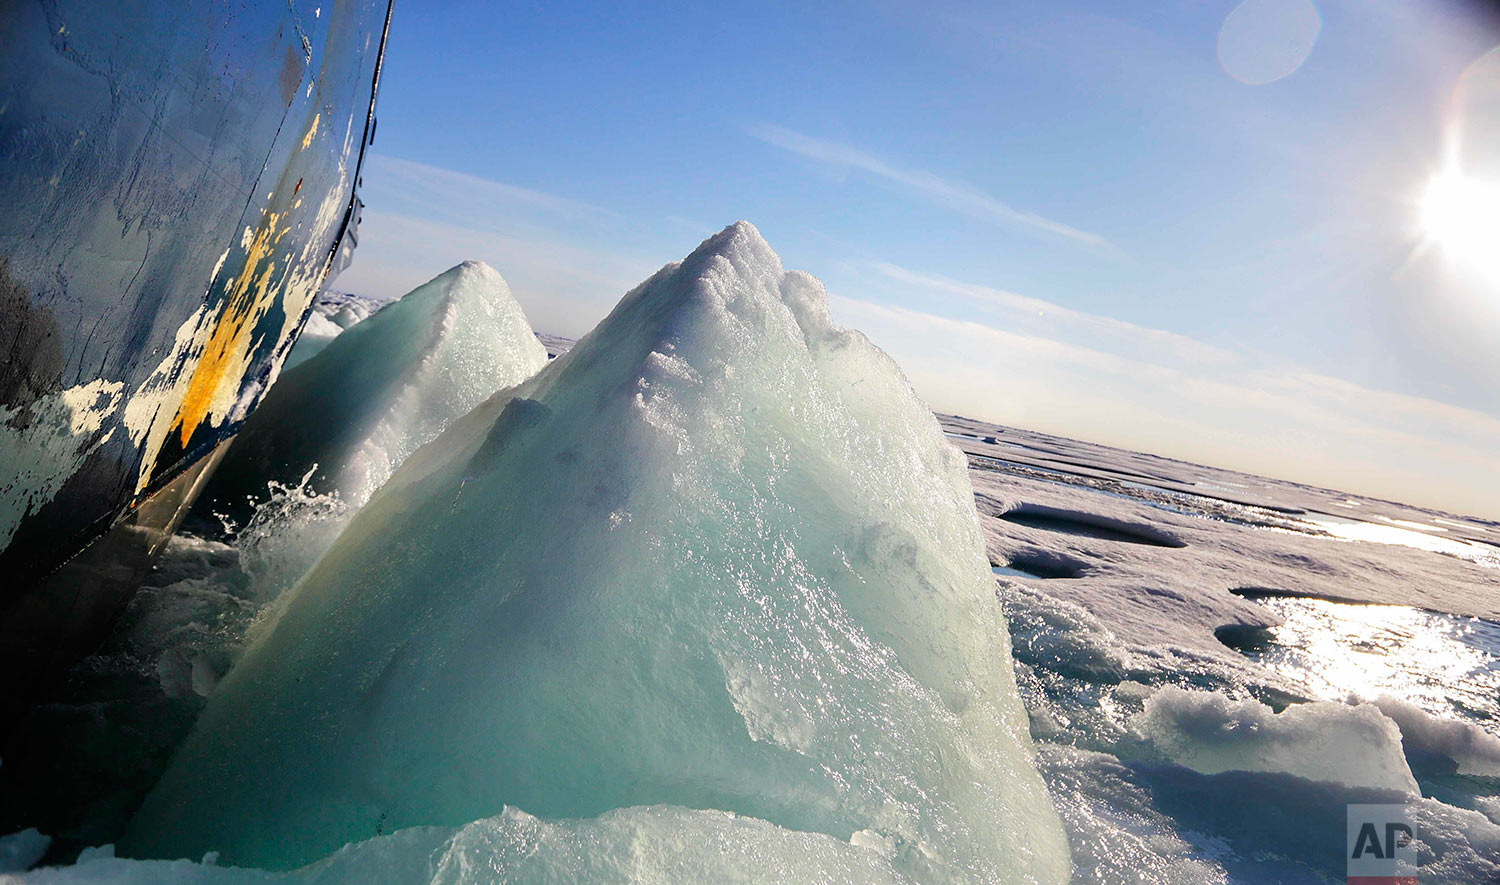 Broken sea ice emerges from under the hull of the Finnish icebreaker MSV Nordica as it sails through the Victoria Strait while traversing the Arctic's Northwest Passage, Friday, July 21, 2017. Sea ice forms when the top layer of water reaches freezing point, usually around the start of October. As temperatures continue to fall this first-year ice grows downward until it is several feet thick. If the ice survives the following summer melt it becomes second-year ice. Another cycle and it becomes multi-year ice, which is the toughest kind. (AP Photo/David Goldman)